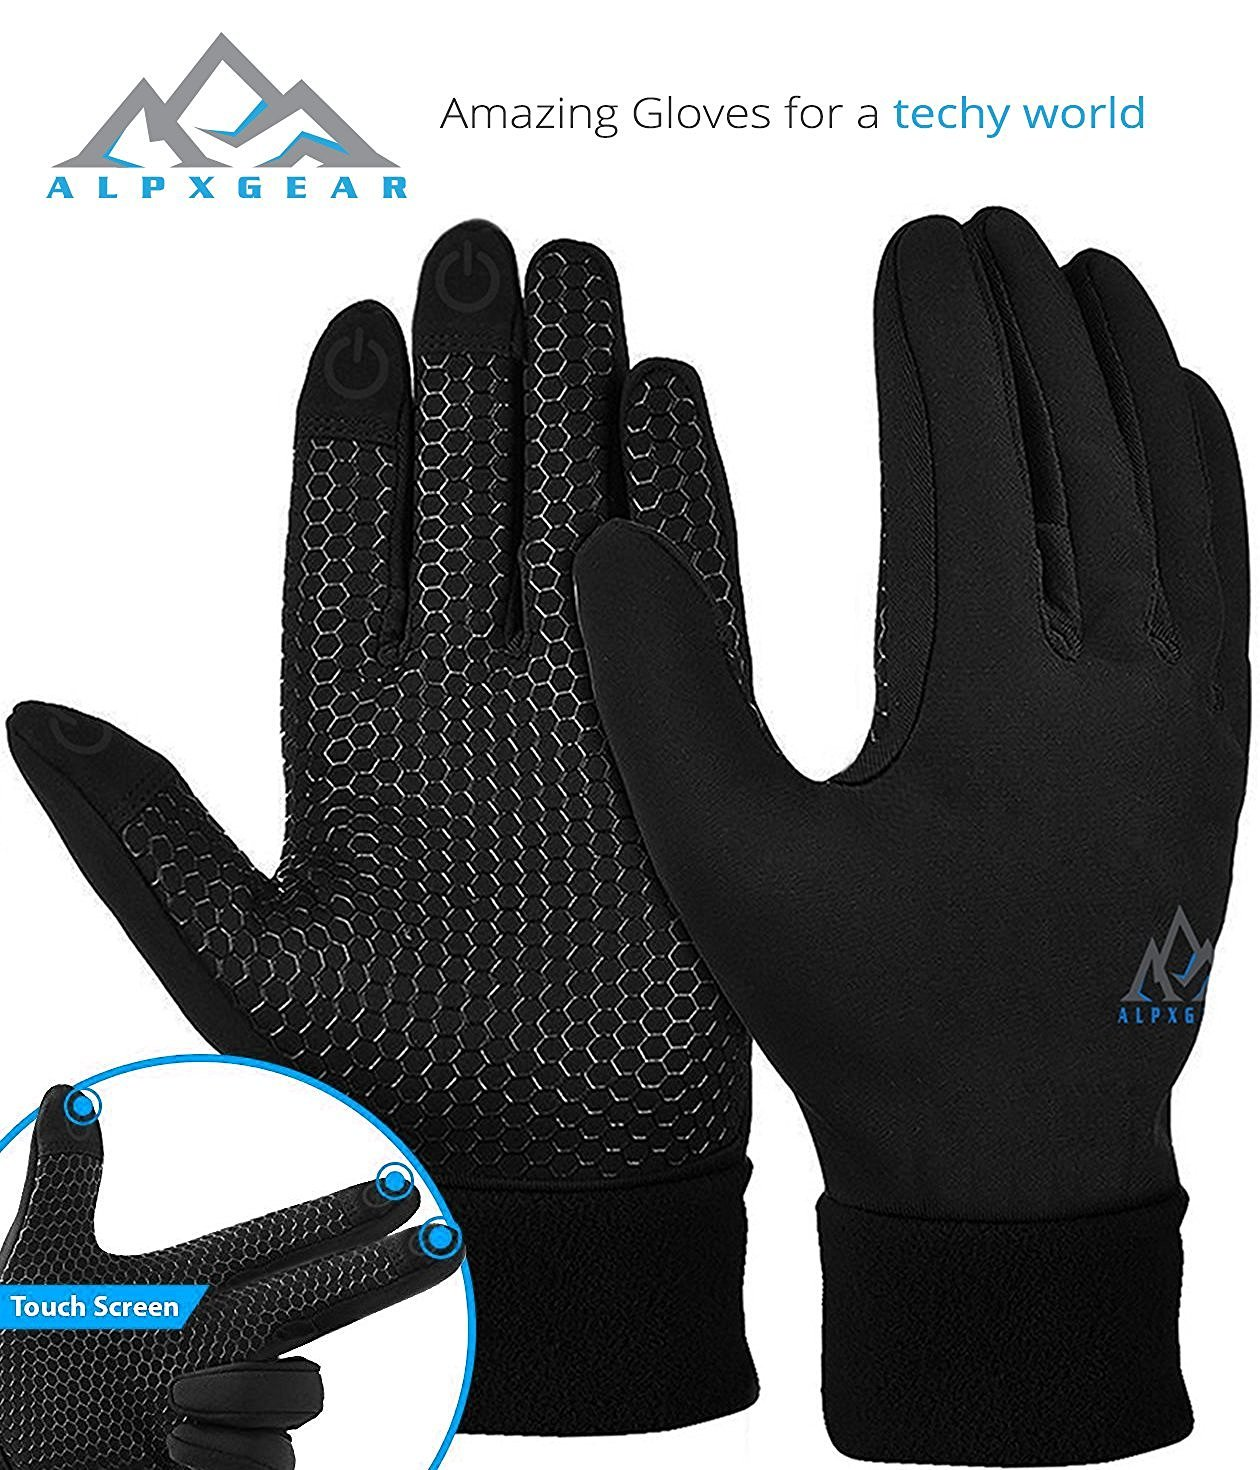 Mens gloves use iphone - Amazon Com Alpxgear Touchscreen Winter Gloves For Men And Women Comes With Snow Fleece Hat Sports Outdoors